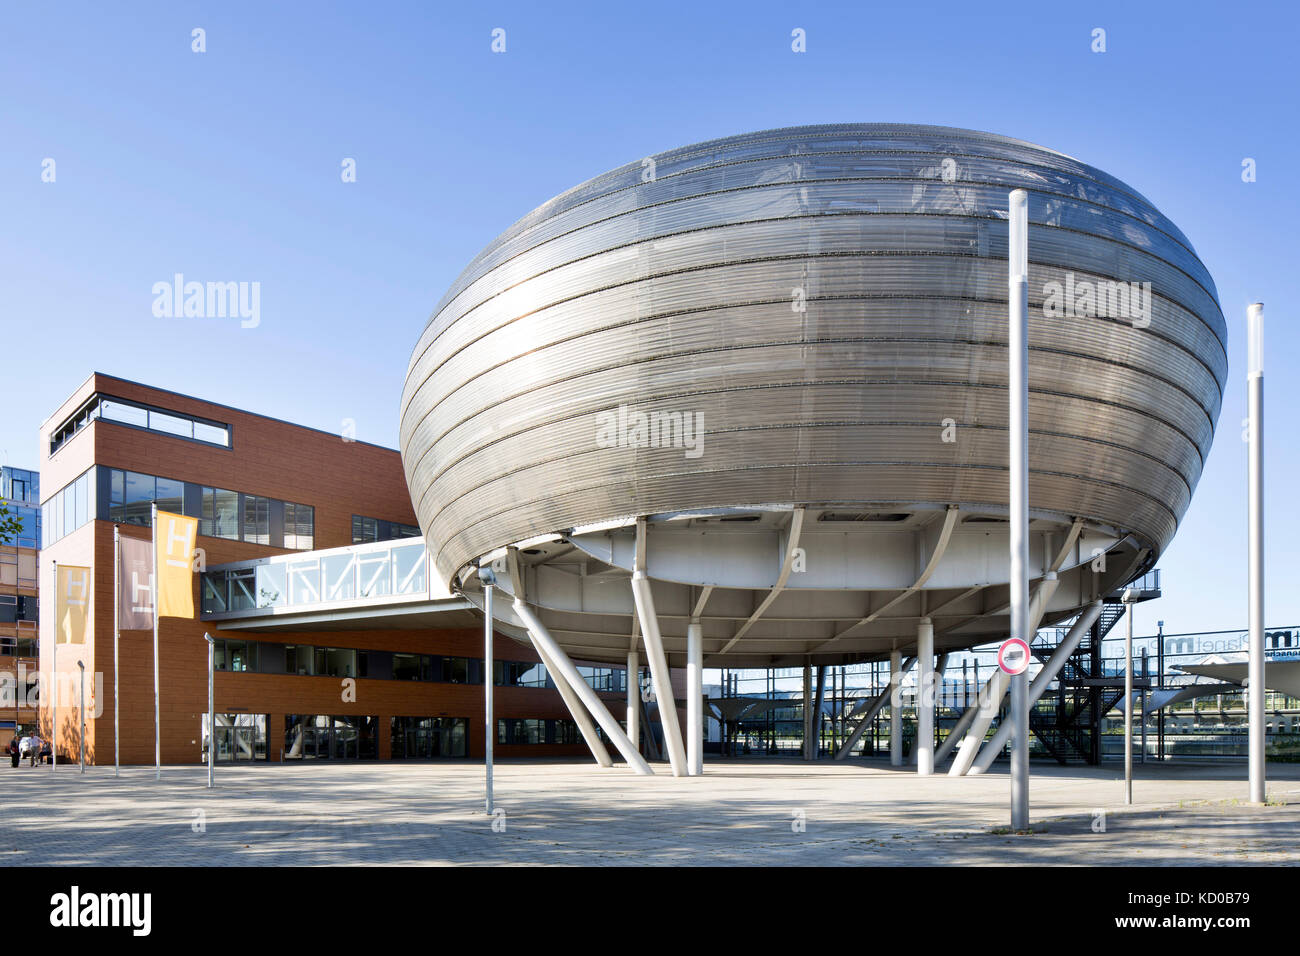 Planet M of Bertelsmann AG at the World Expo 2000, today used by Hannover University of Applied Sciences, Hanover, - Stock Image